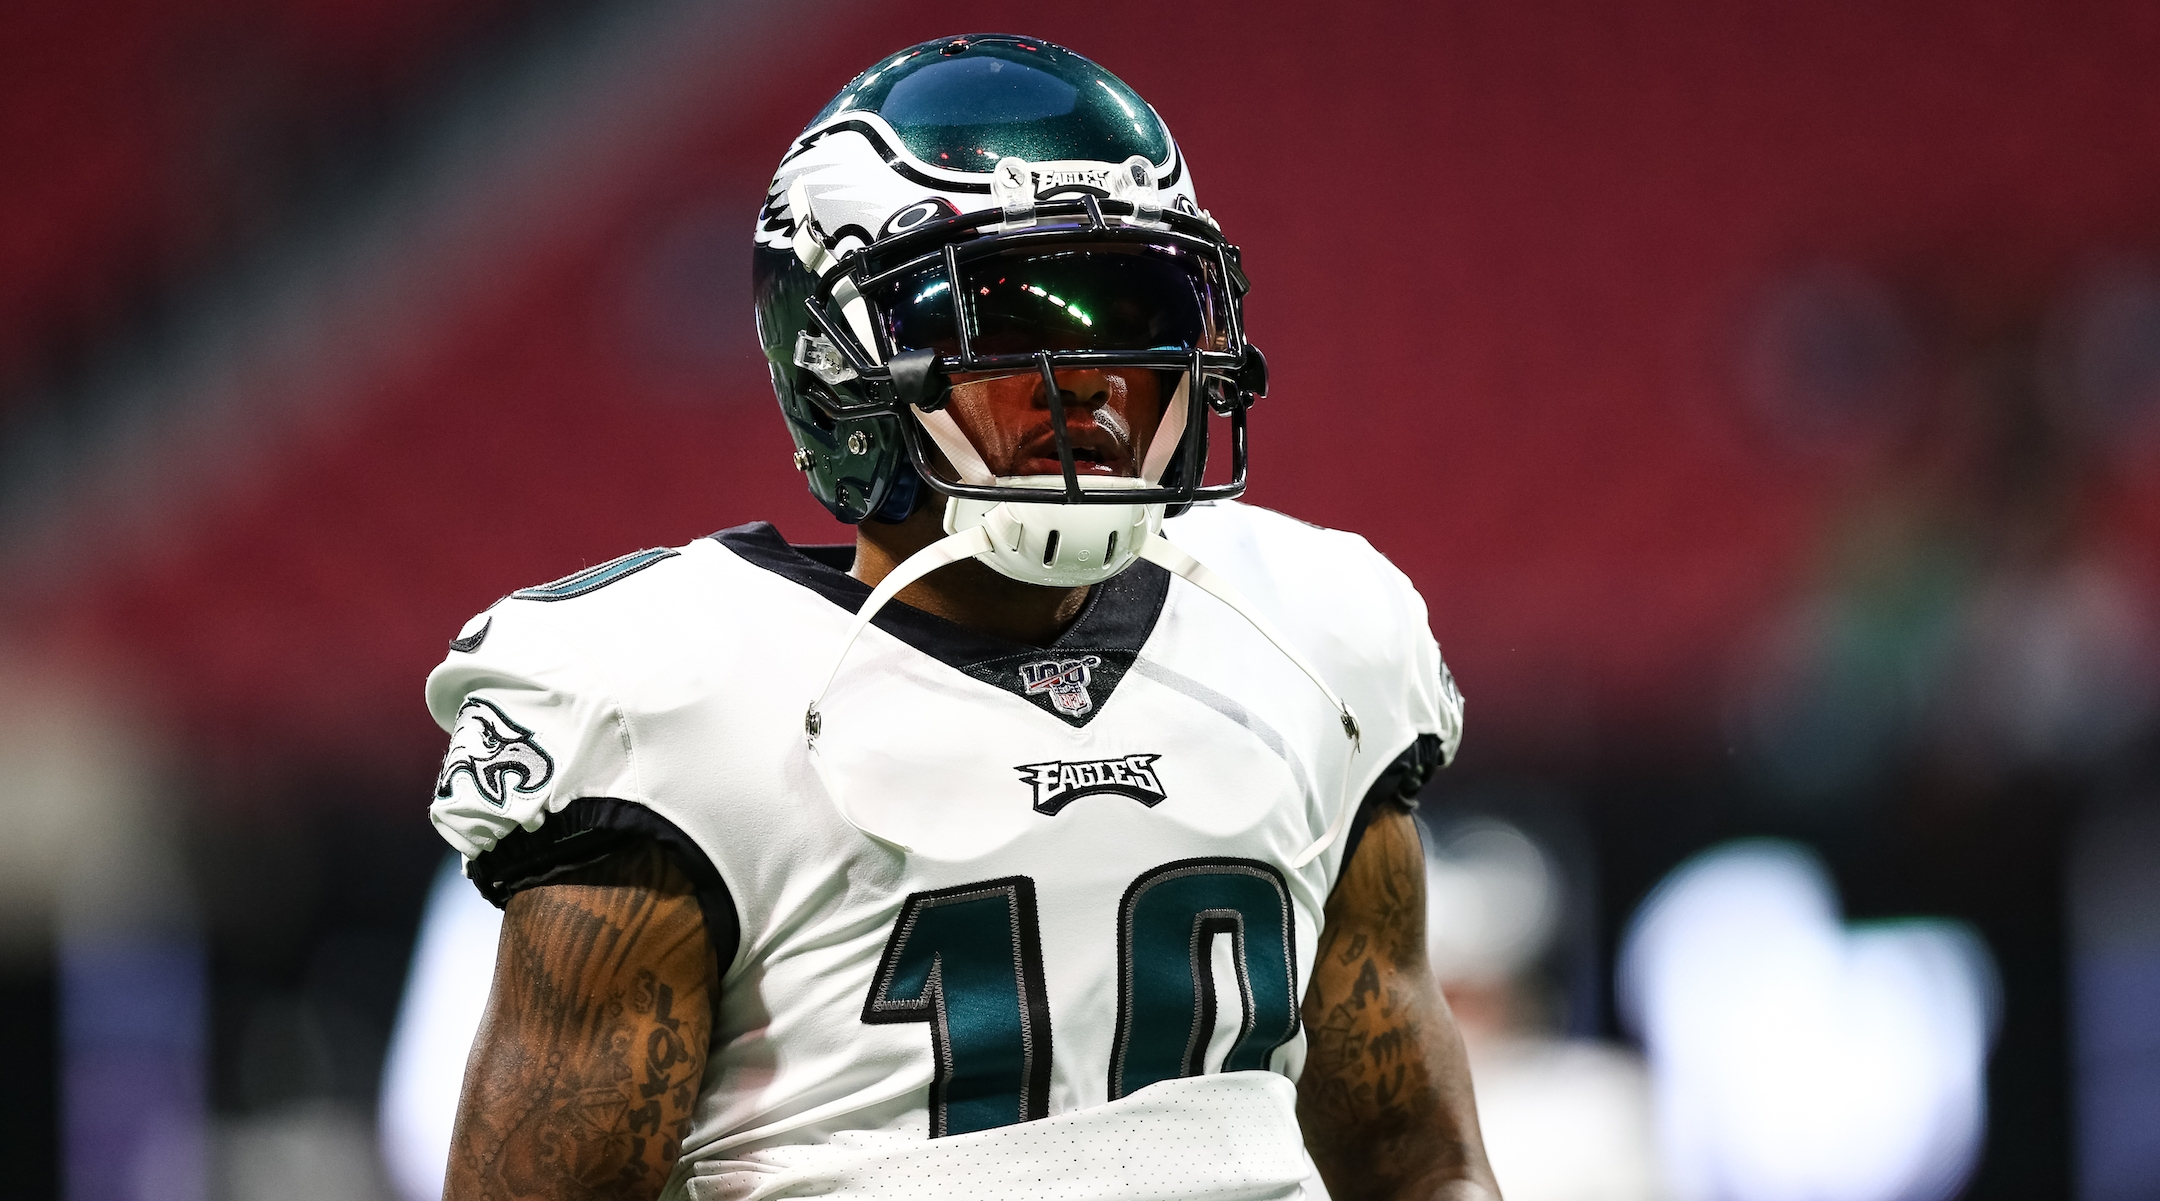 Jewish groups to NFL star DeSean Jackson: Let us teach you about dangers of anti-Semitism